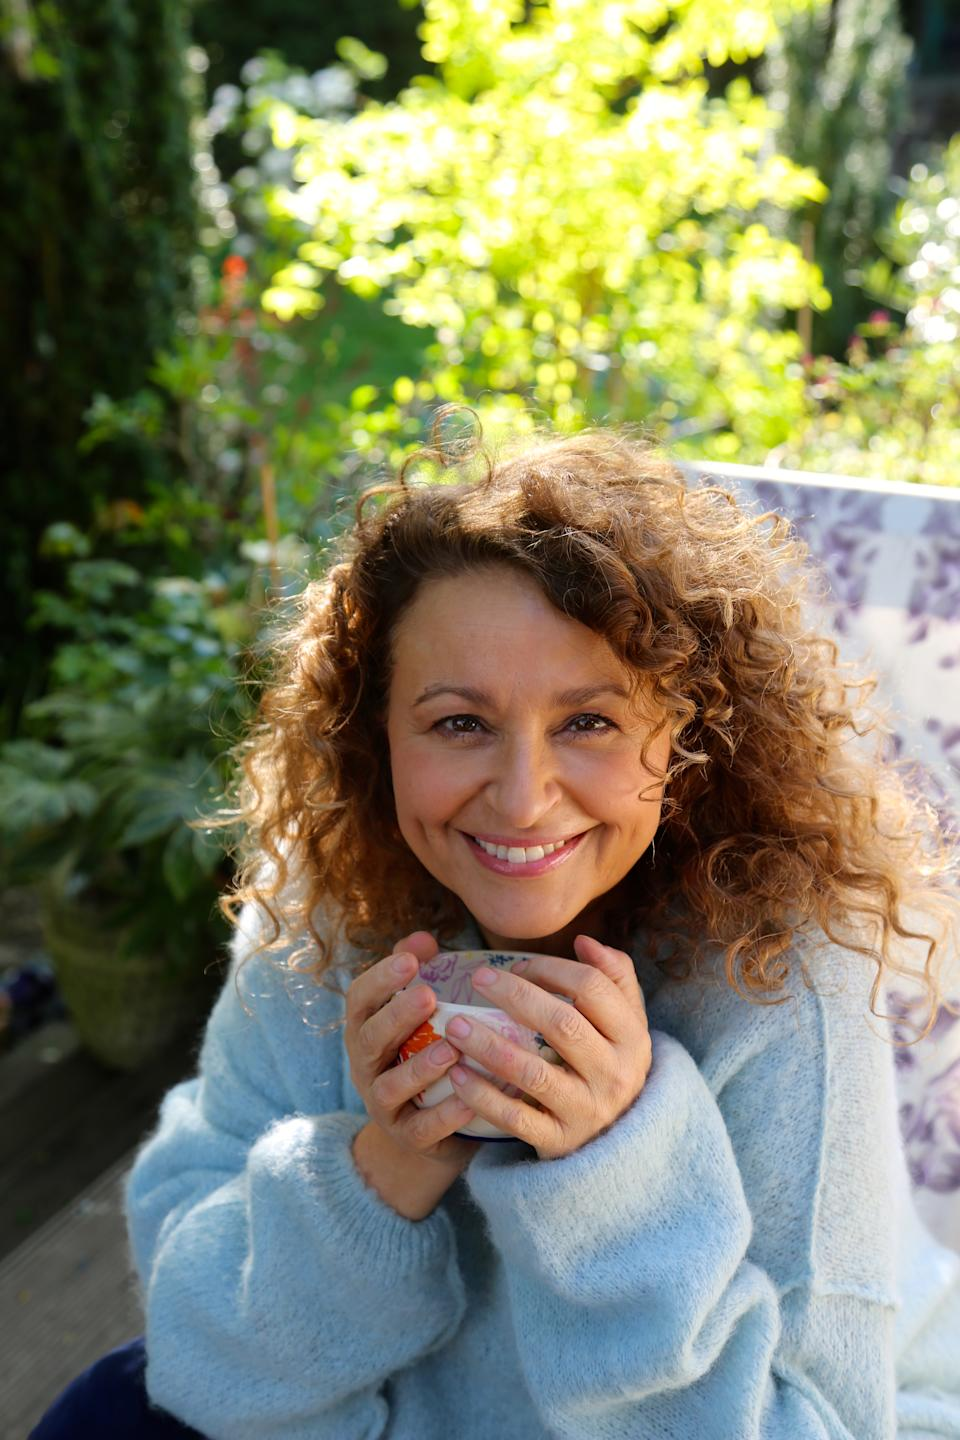 Nadia Sawalha lives next to her parents but is keeping her distance for the sake of their health.